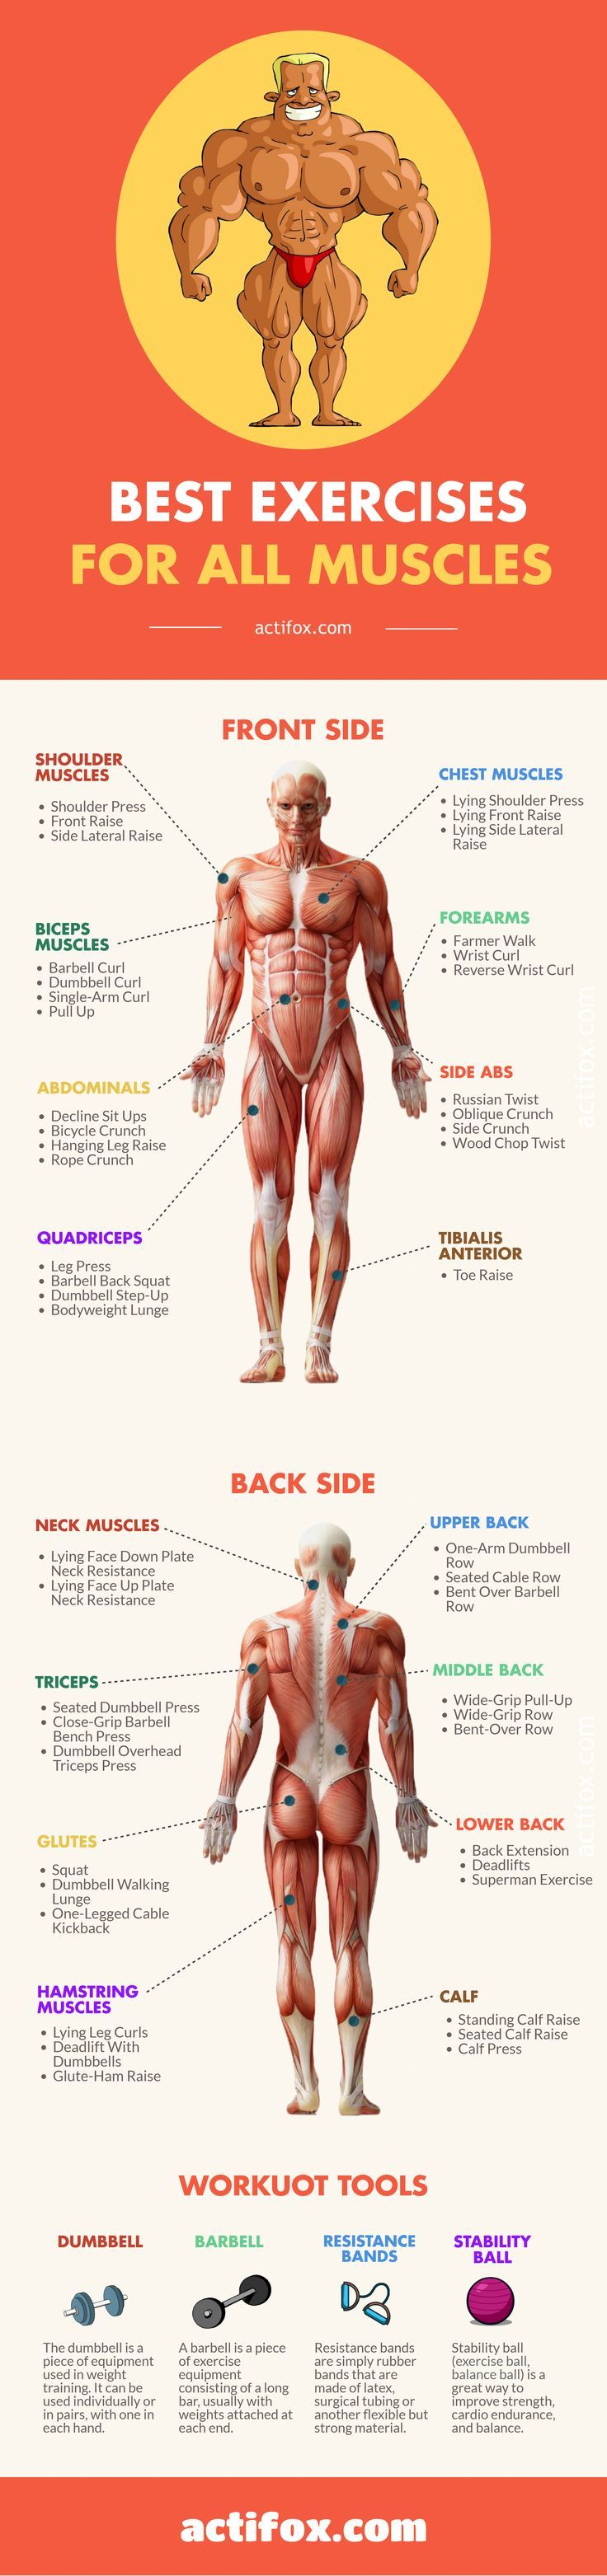 The Best Muscle-Building Exercises For Every Body Part actifox.com ...